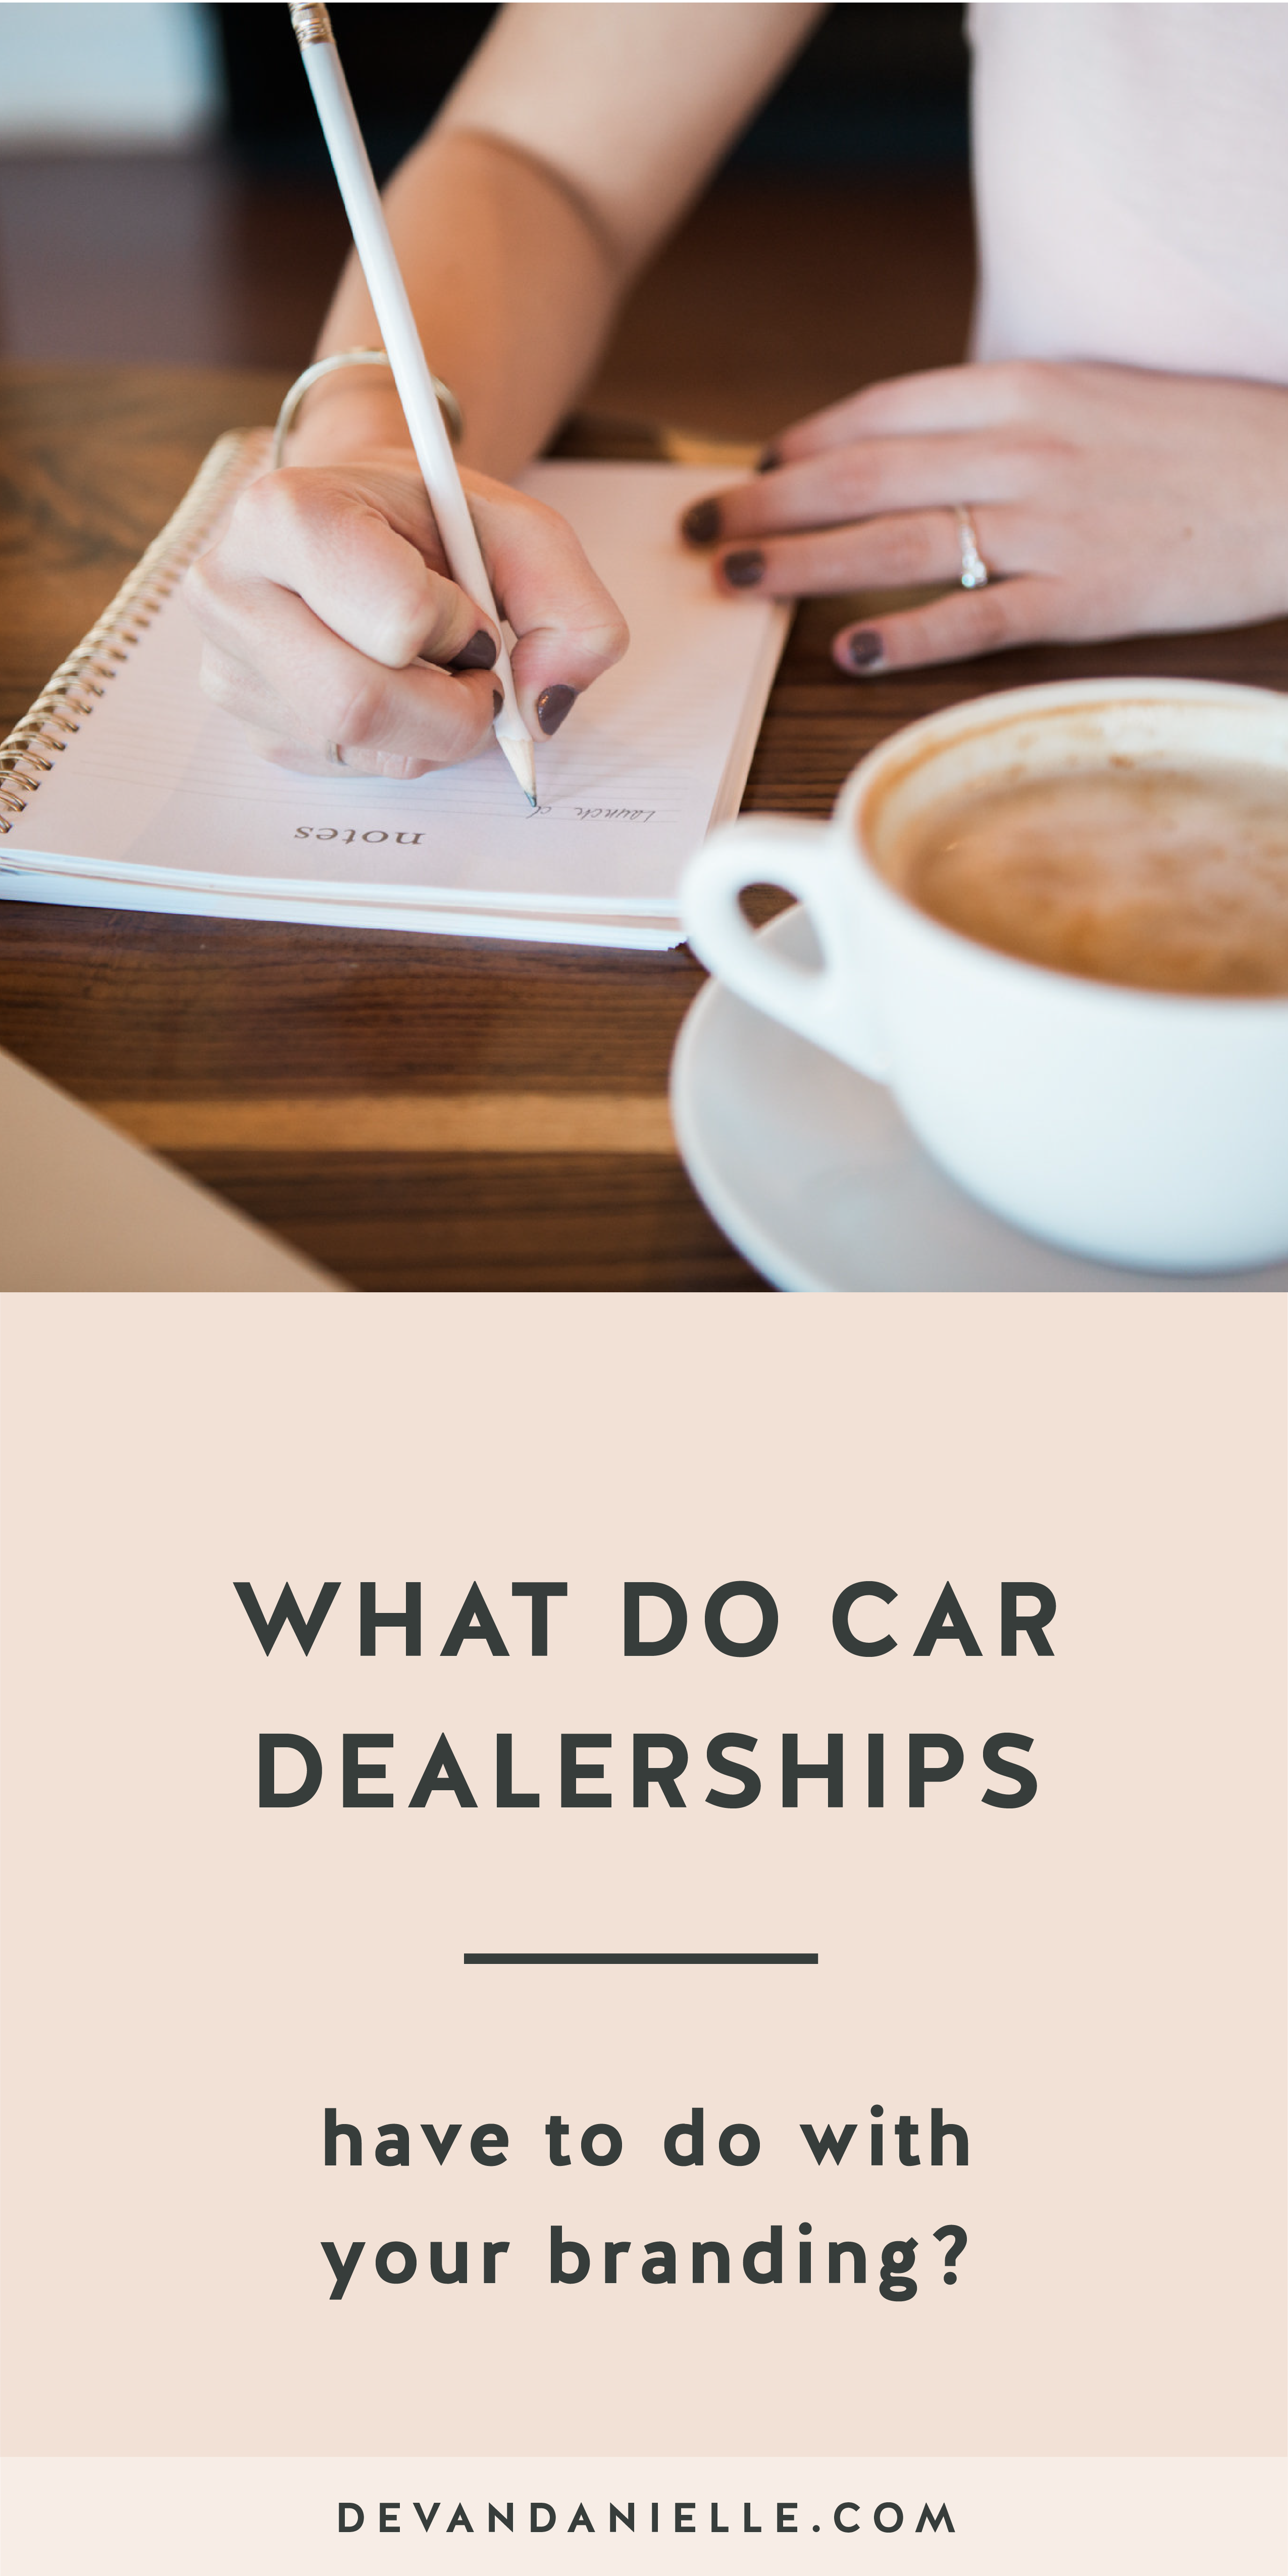 What do car dealerships have to do with your branding